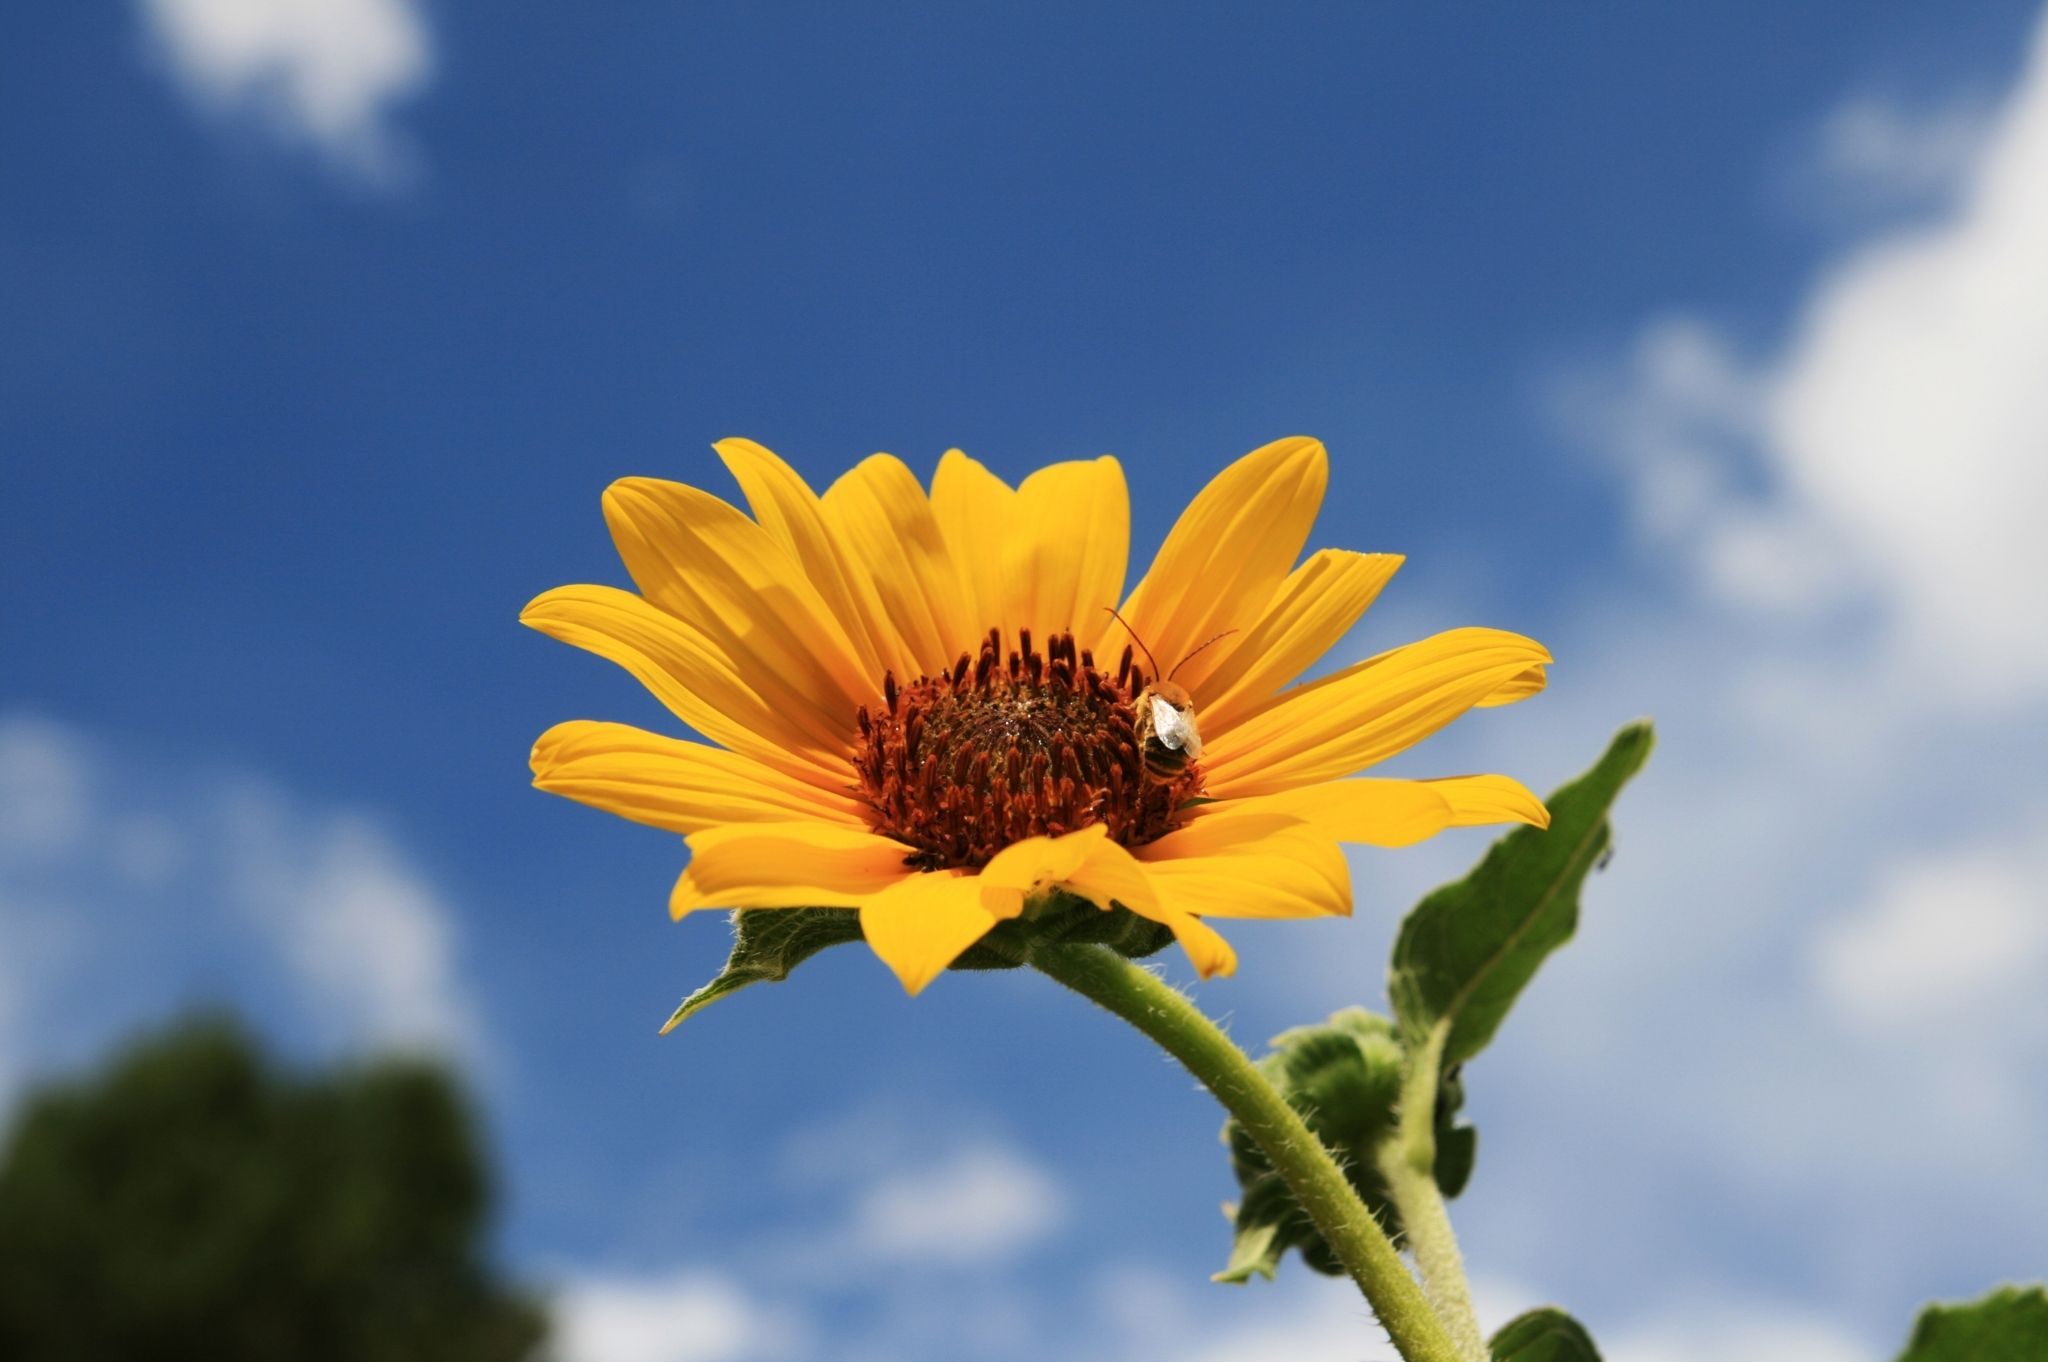 Image of a bee on a sunflower